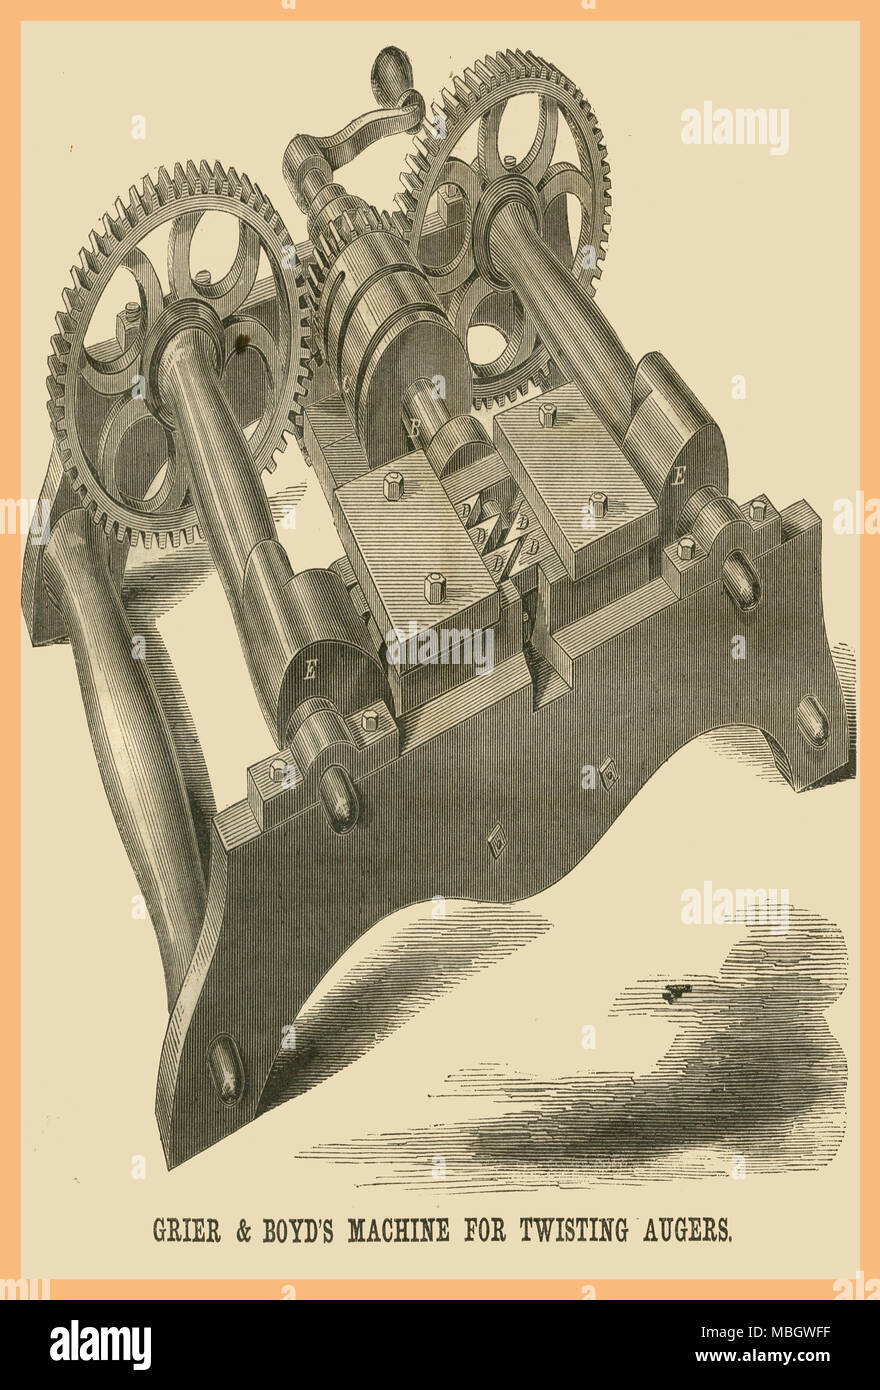 Grier & Boyd's Machine for Twisting Augurs - Stock Image